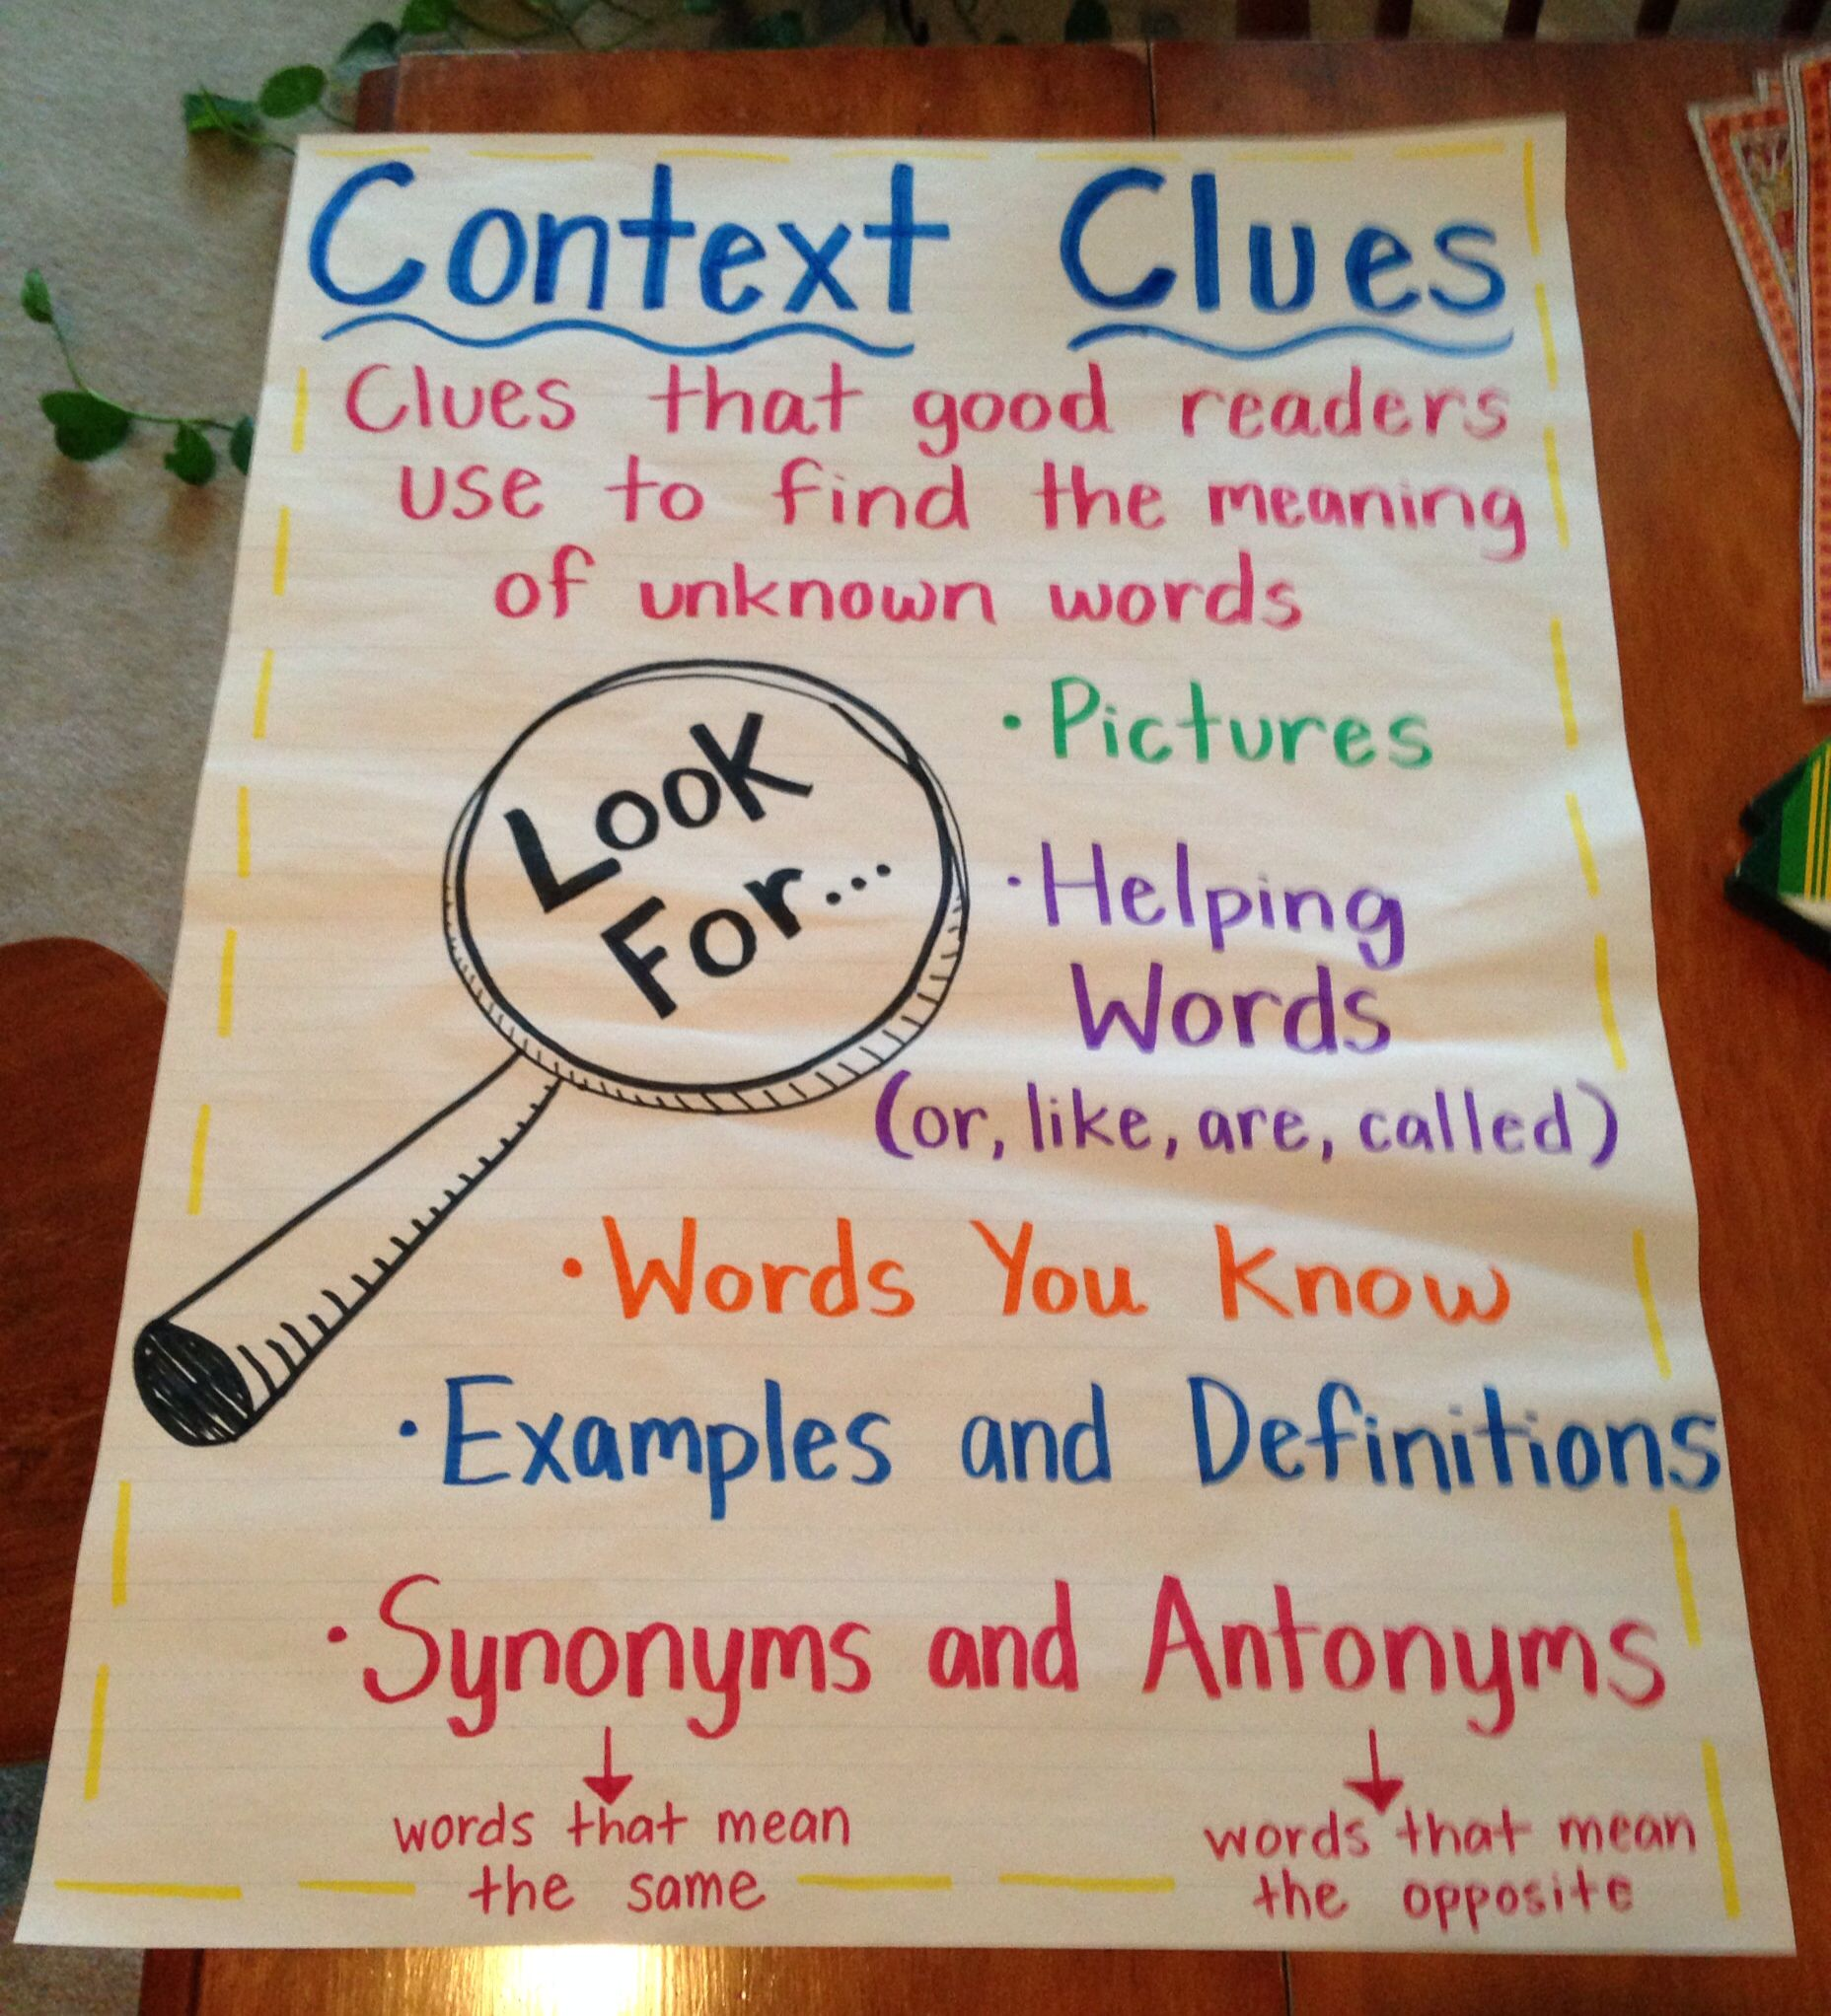 Context Clues That Readers Use To Find The Meaning Of